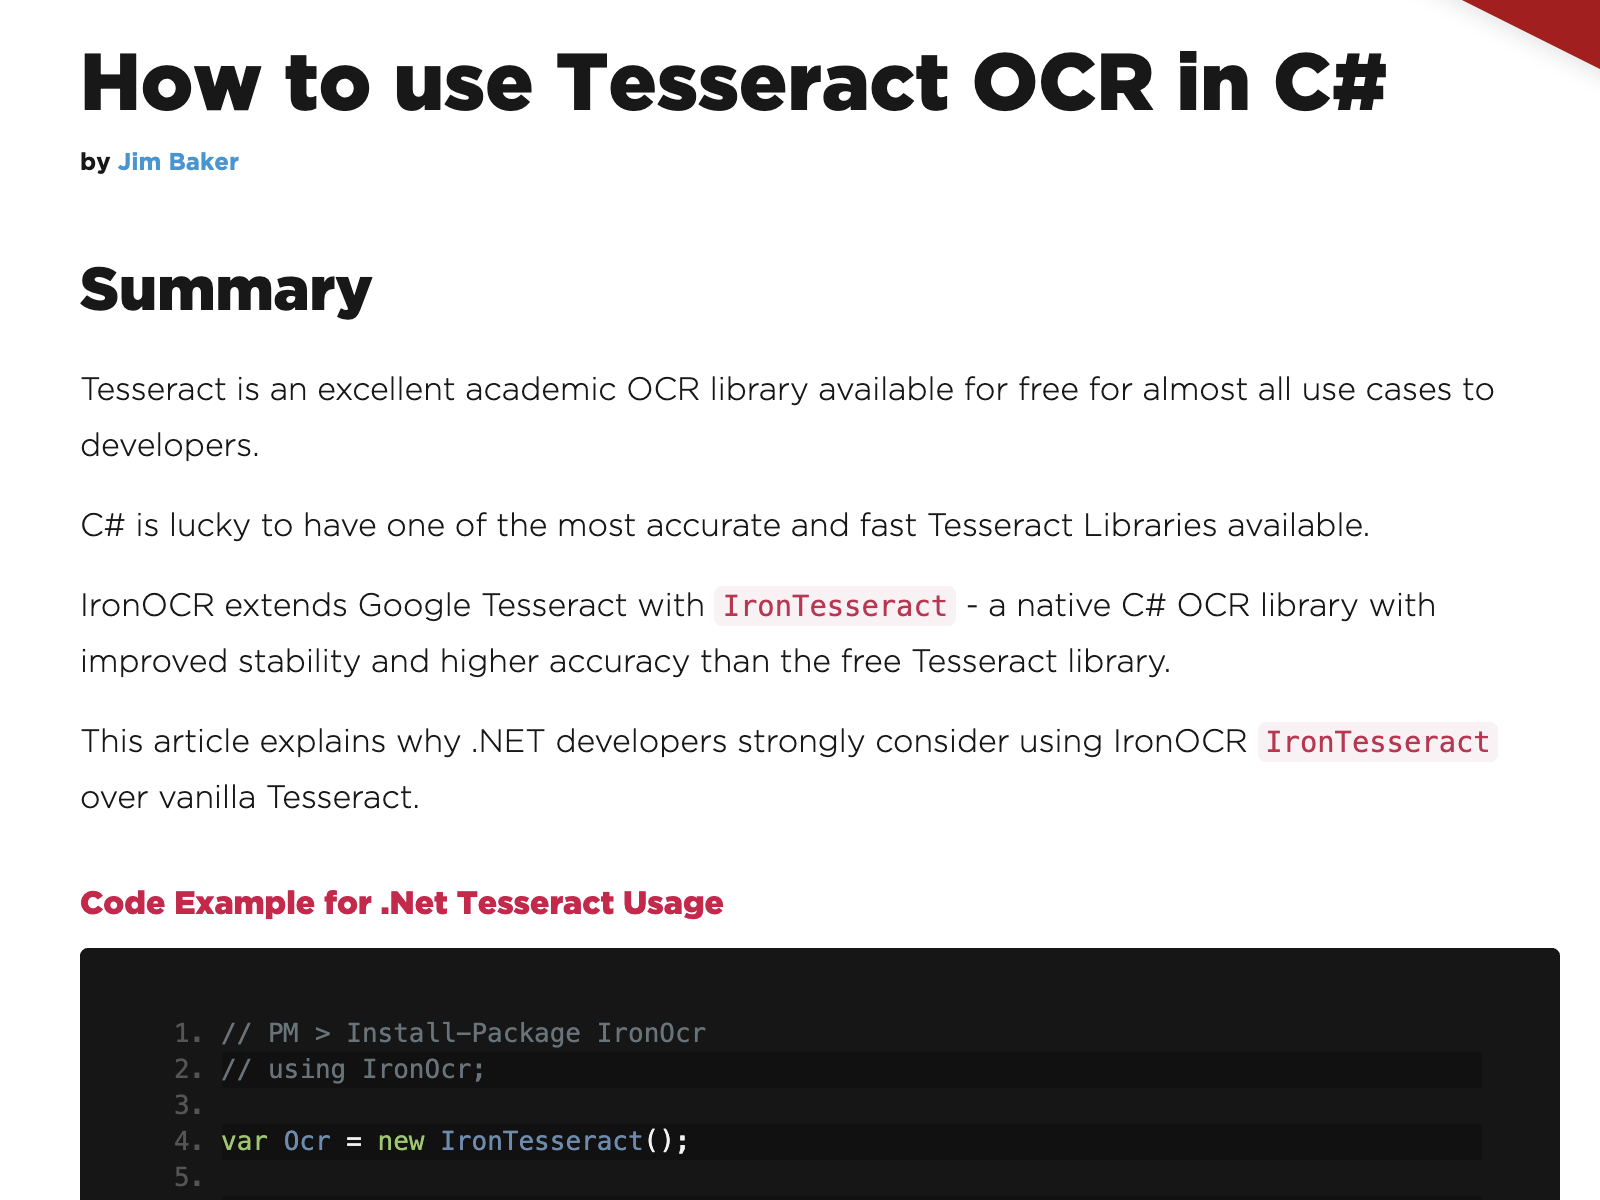 How to use Tesseract OCR in C# full screenshot